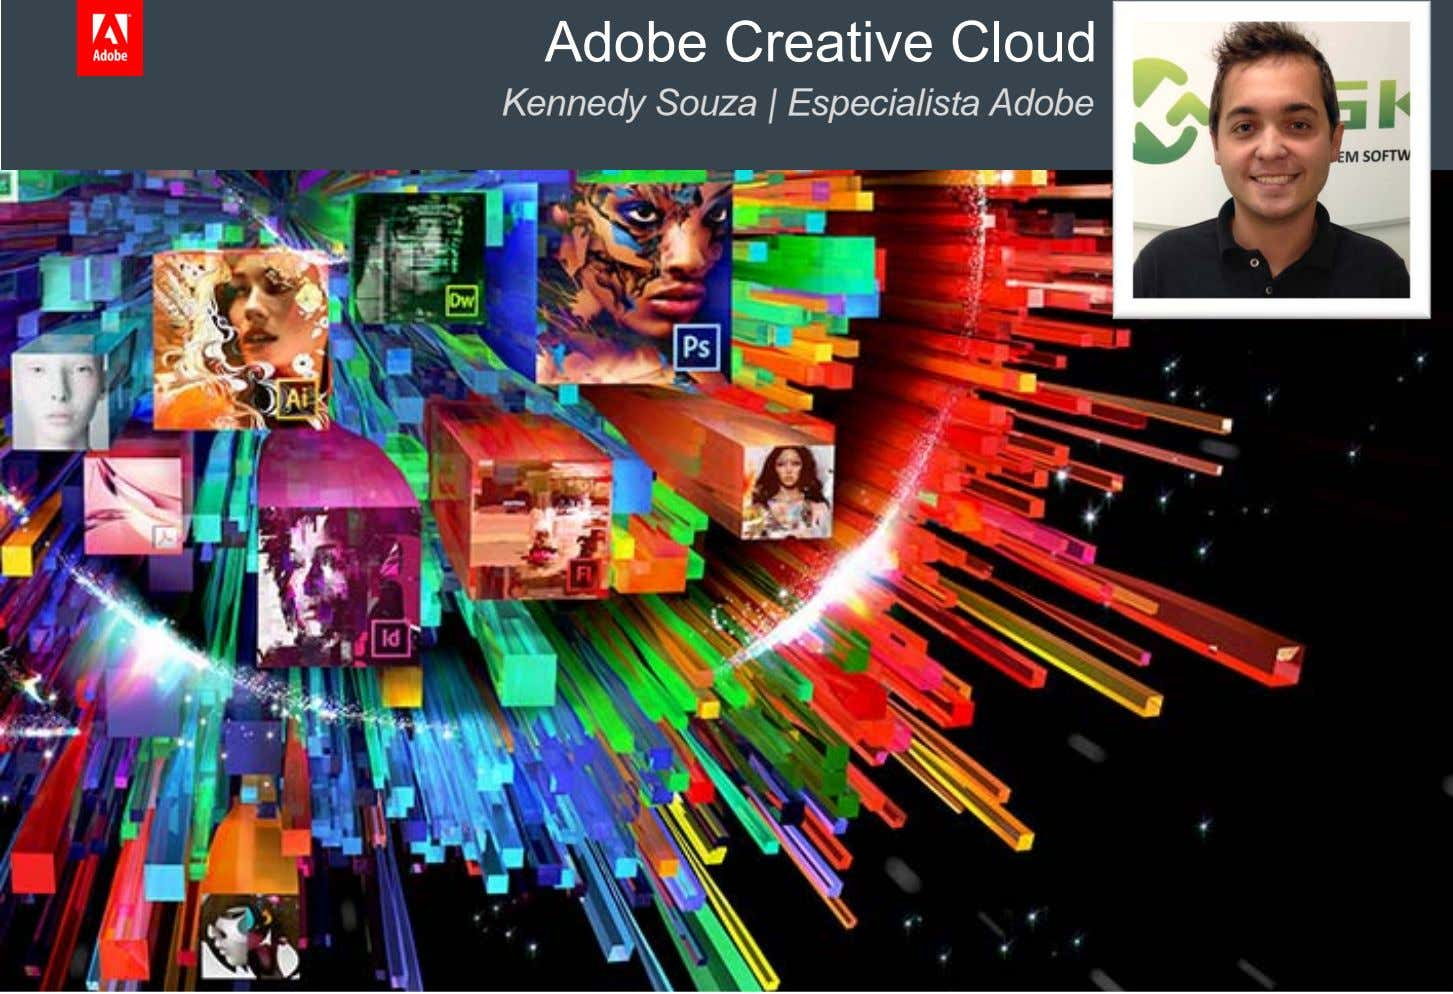 Adobe Creative Cloud Kennedy Souza | Especialista Adobe